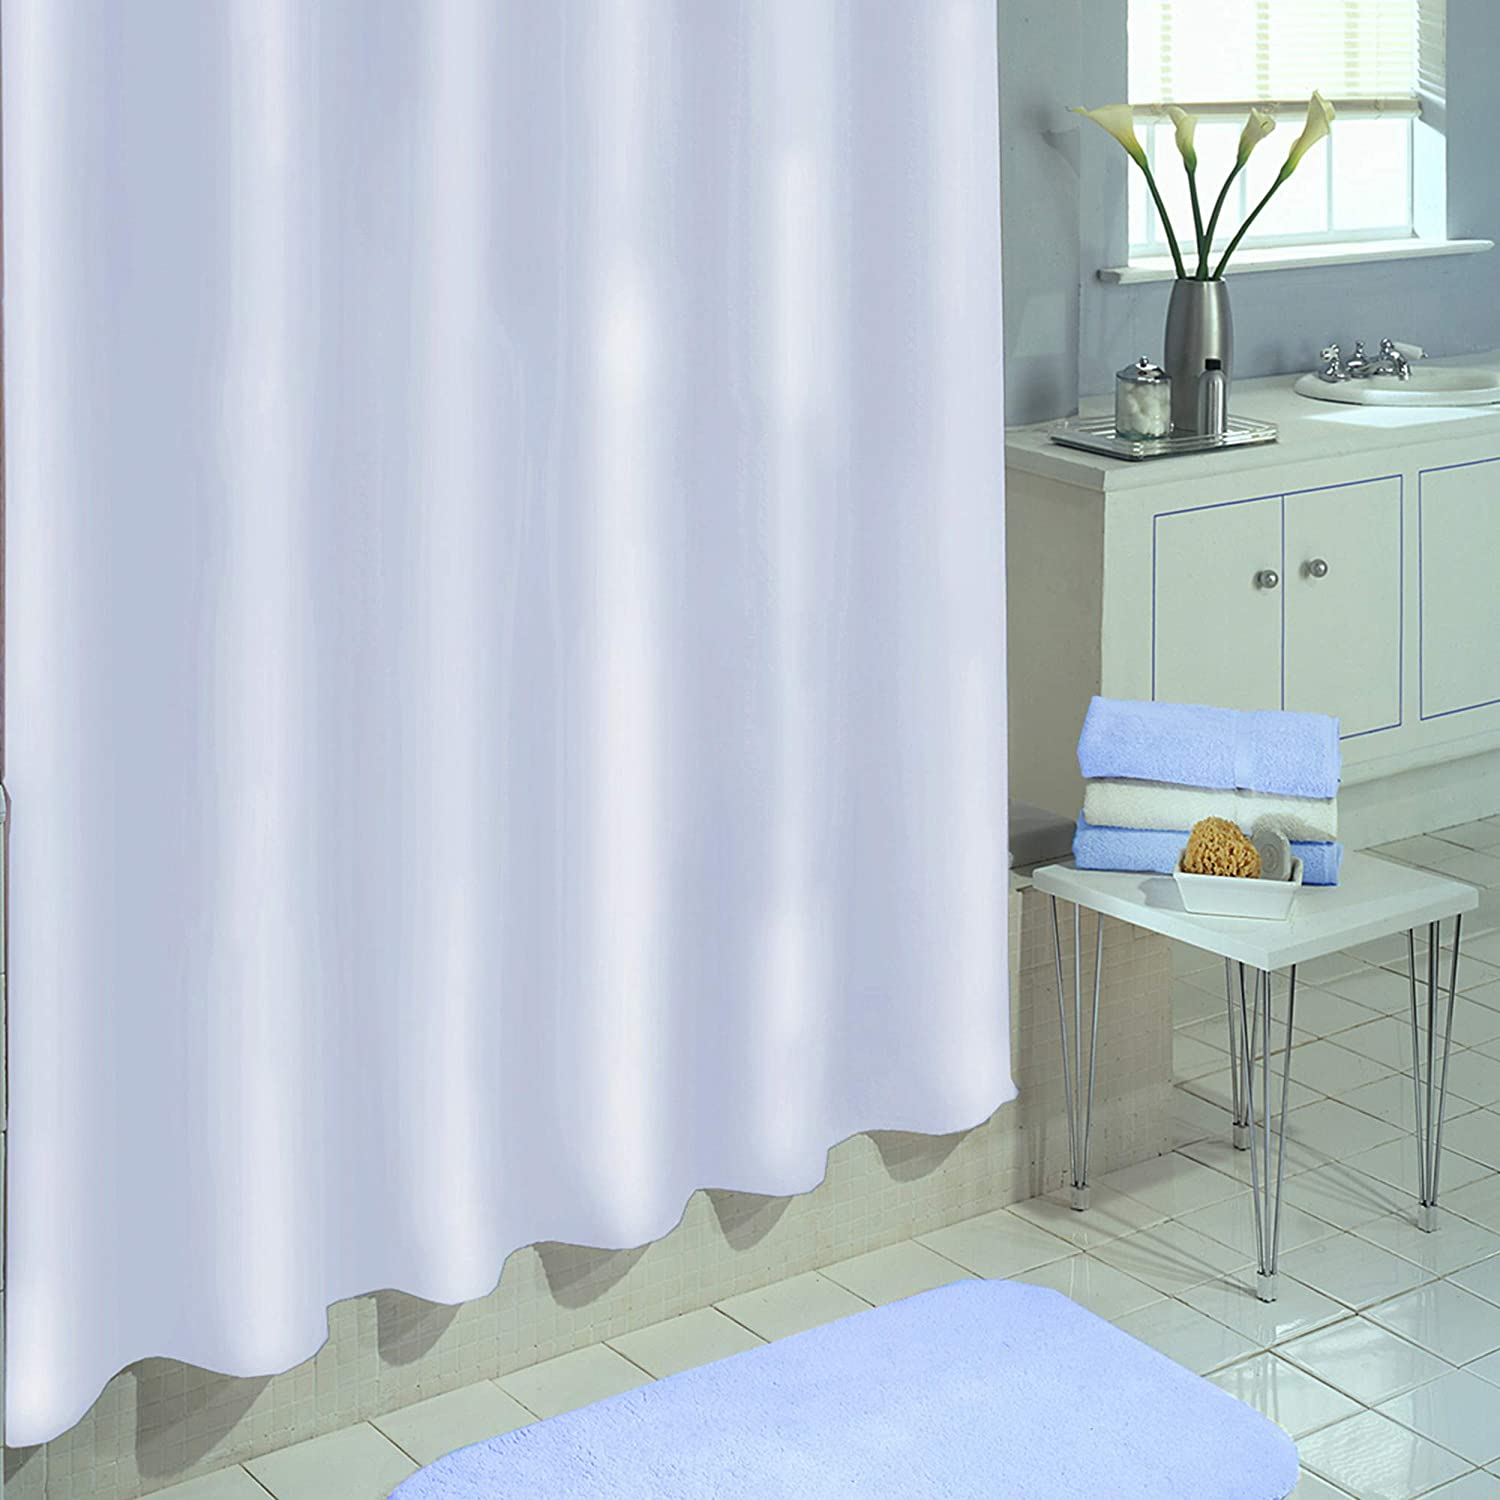 """EXCELL Vinyl Shower Curtain, Mold and Mildew-Resistant Water-Repellent Bath Liner with suction cups, 70""""x71"""", White"""